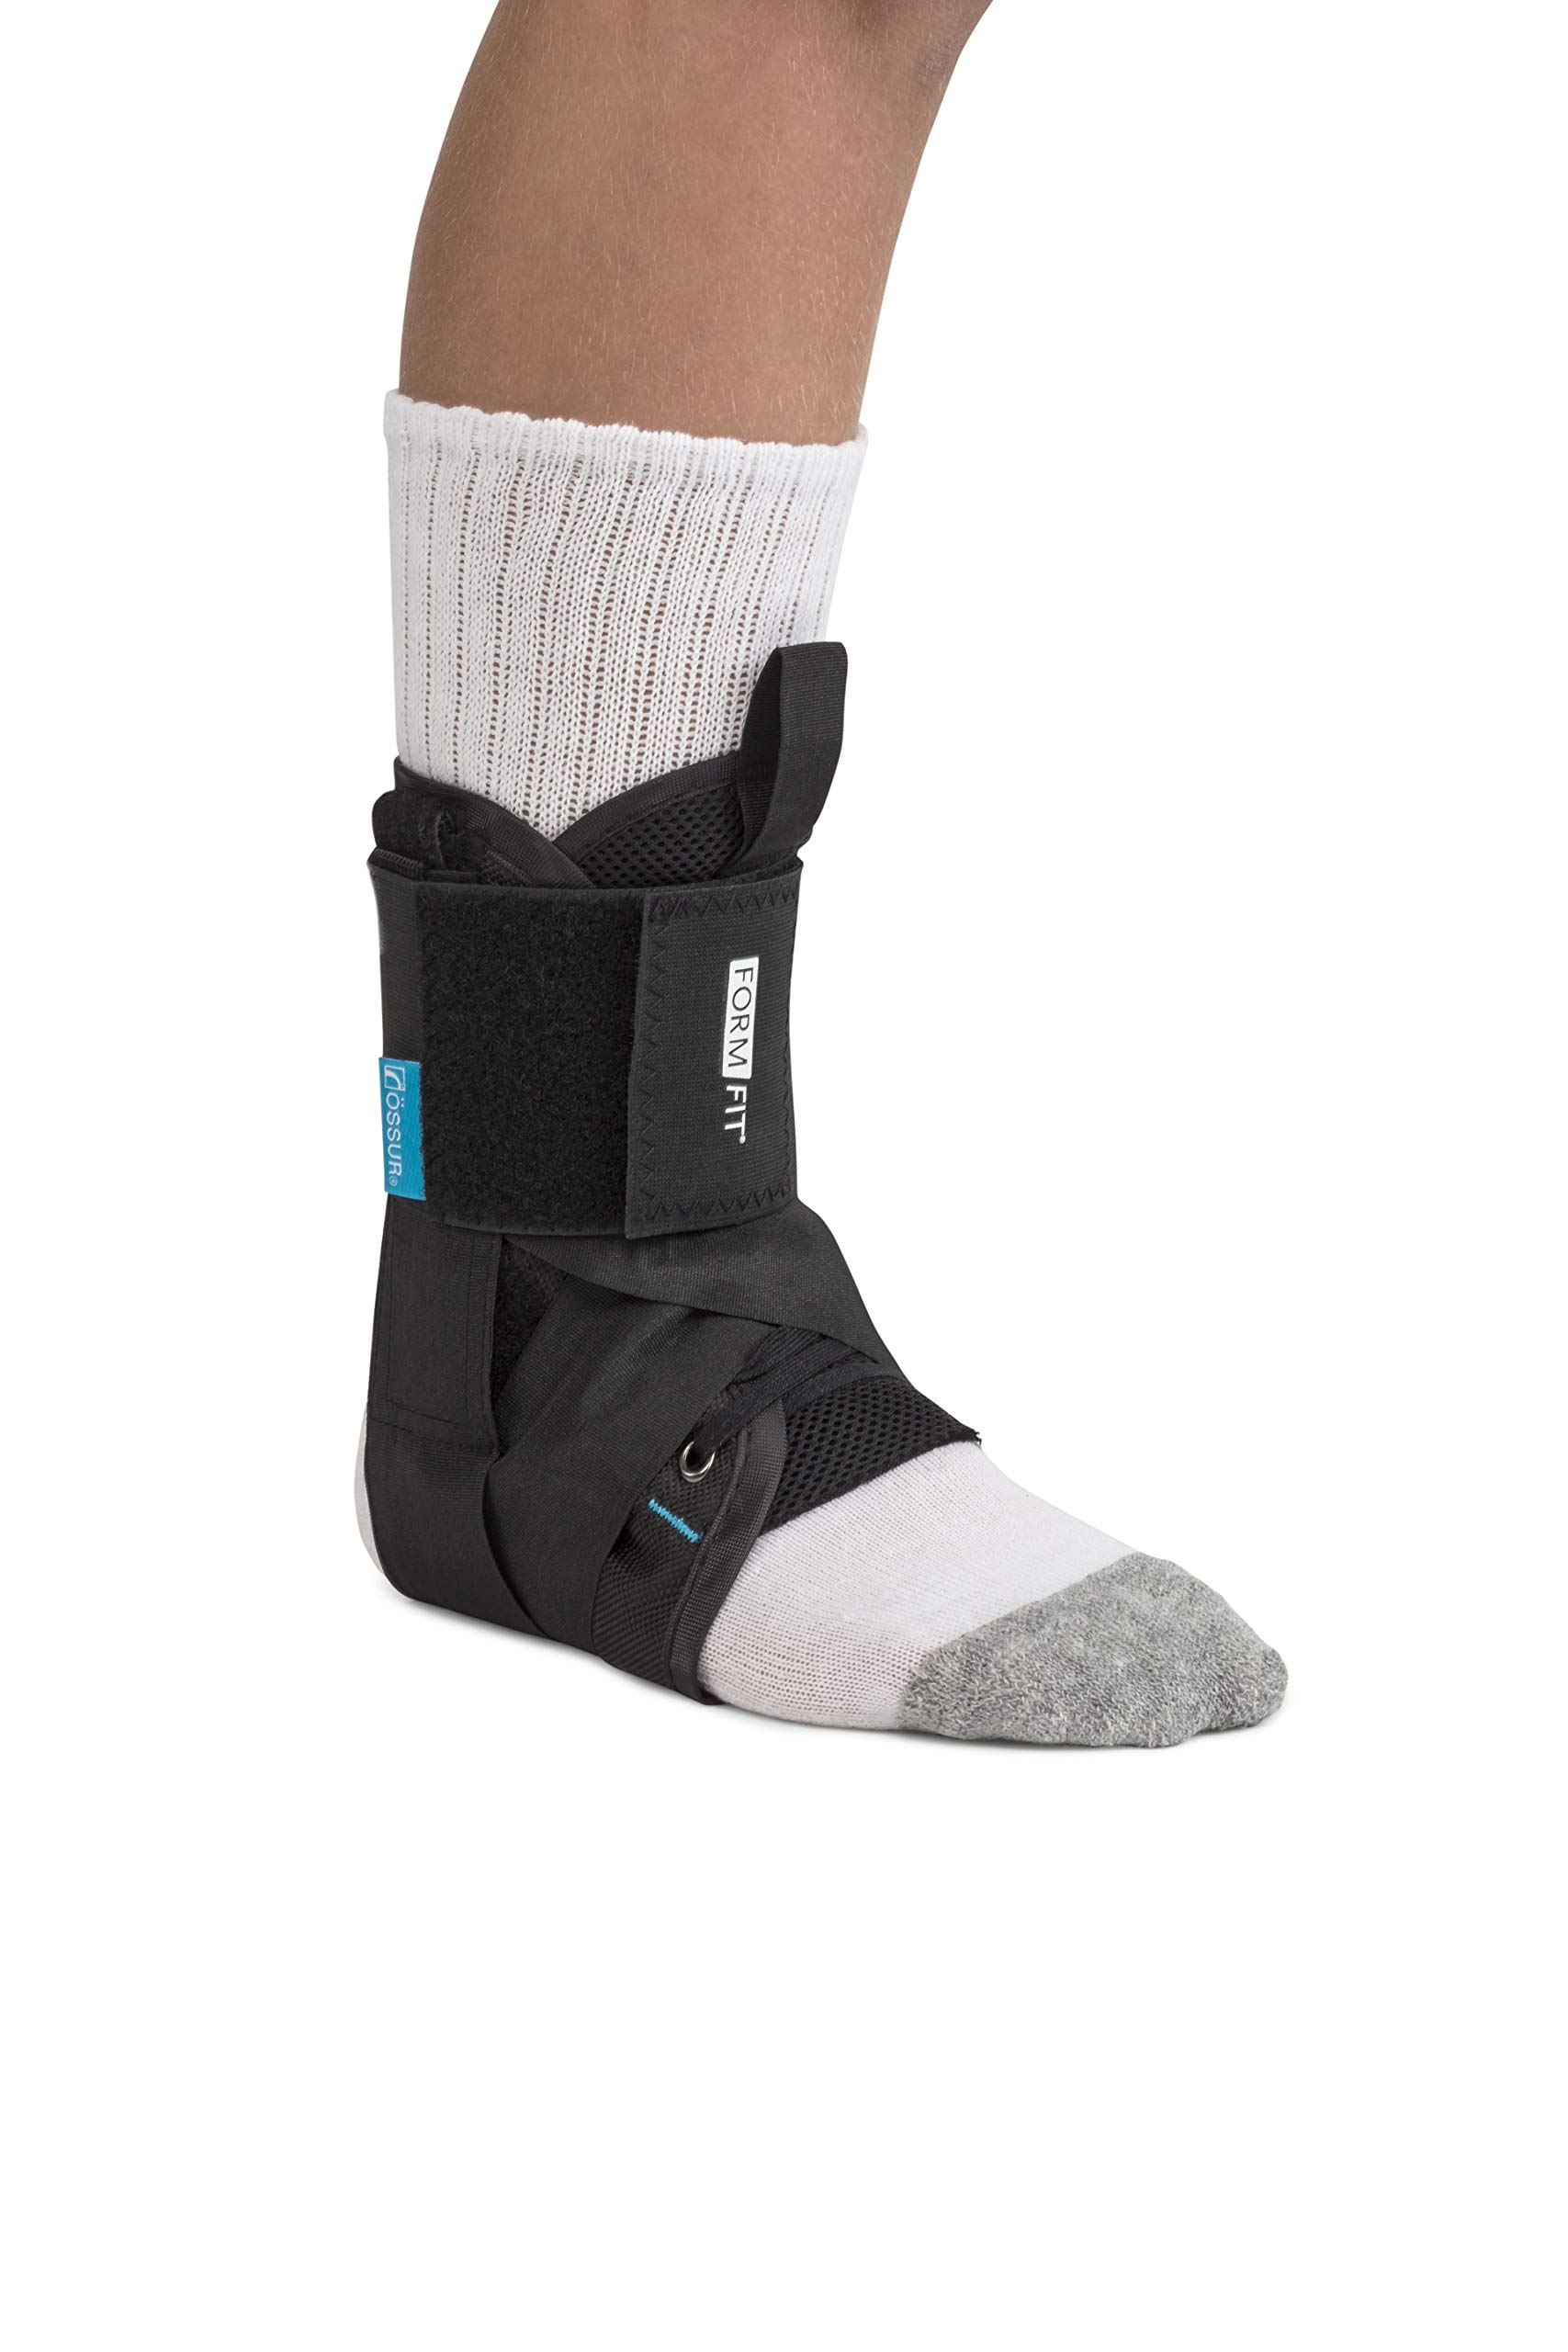 Ossur Formfit Ankle with Speedlace - Medical Grade Ankle Stability and Protection, Single Pull Closure Mechanism and Removable Semi-Rigid Stays (Medium) by Ossur